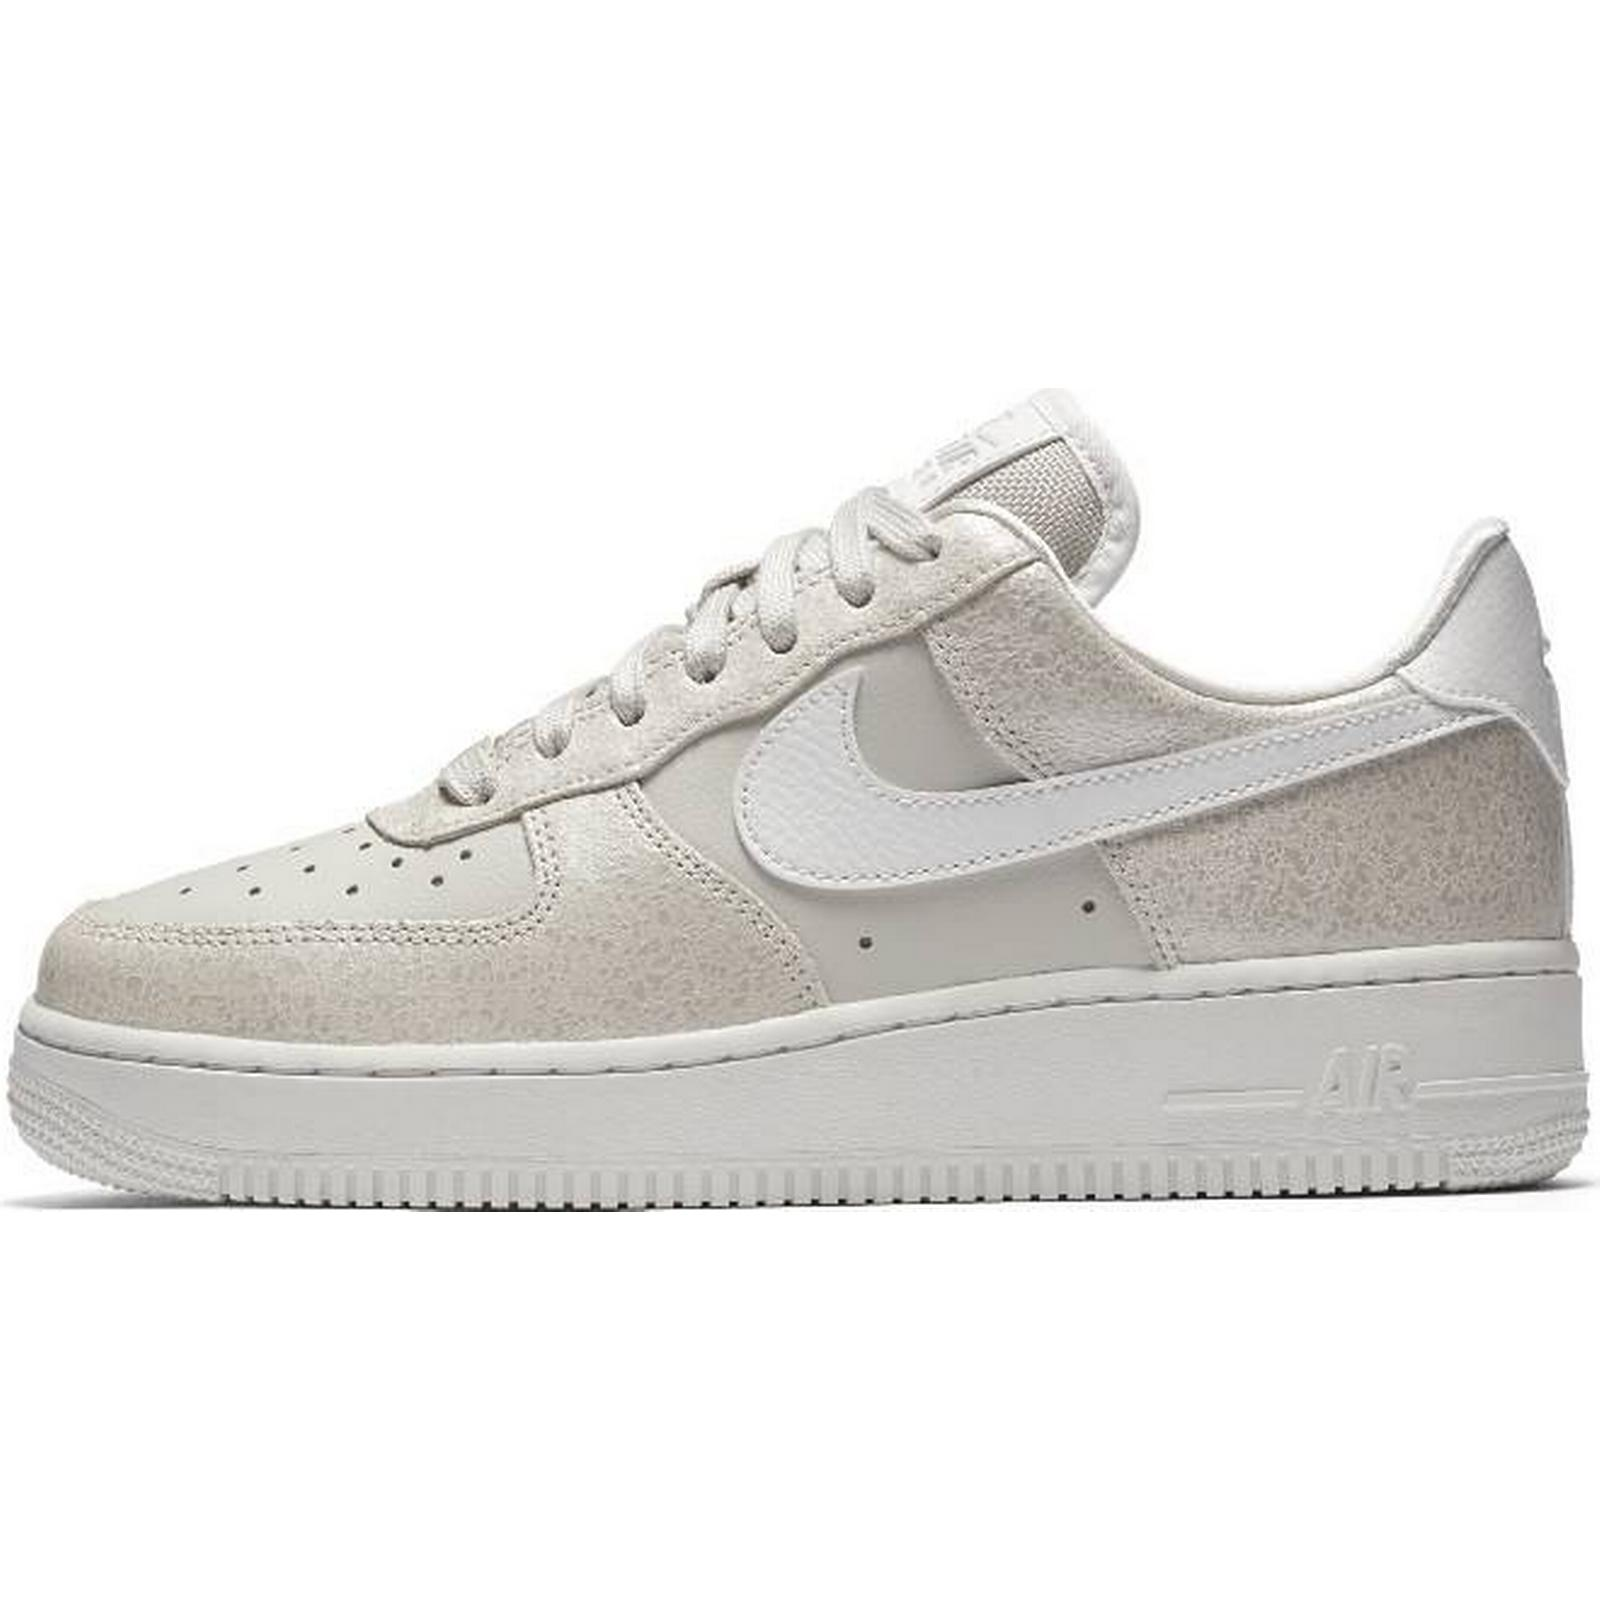 Man/Woman : NIKE Buty Damskie Nike Air Force : 1 '07 Low Premium : Force Cheap Prices a2bedf